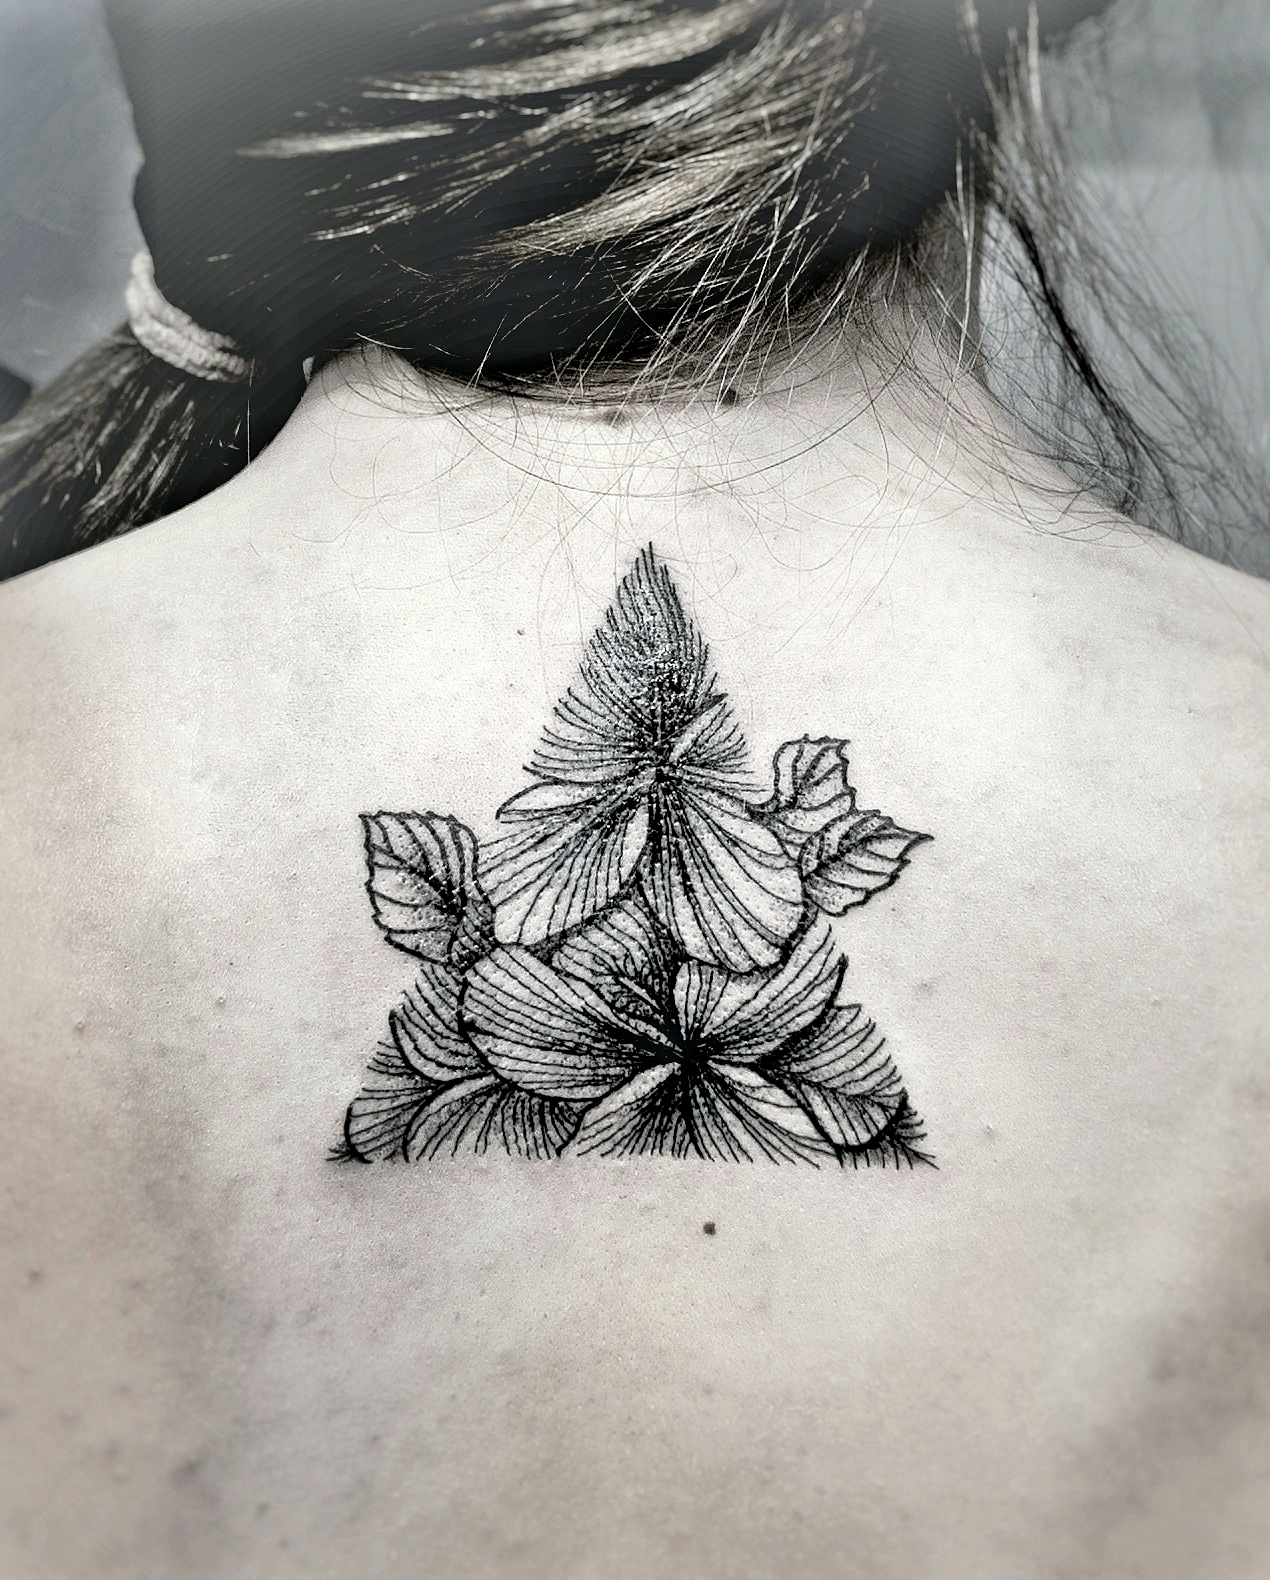 Custom Black Work Hibiscus Flowers inside a Trianlge Tattoo by Dani at Certified Tattoo Studios Denver Co.jpg